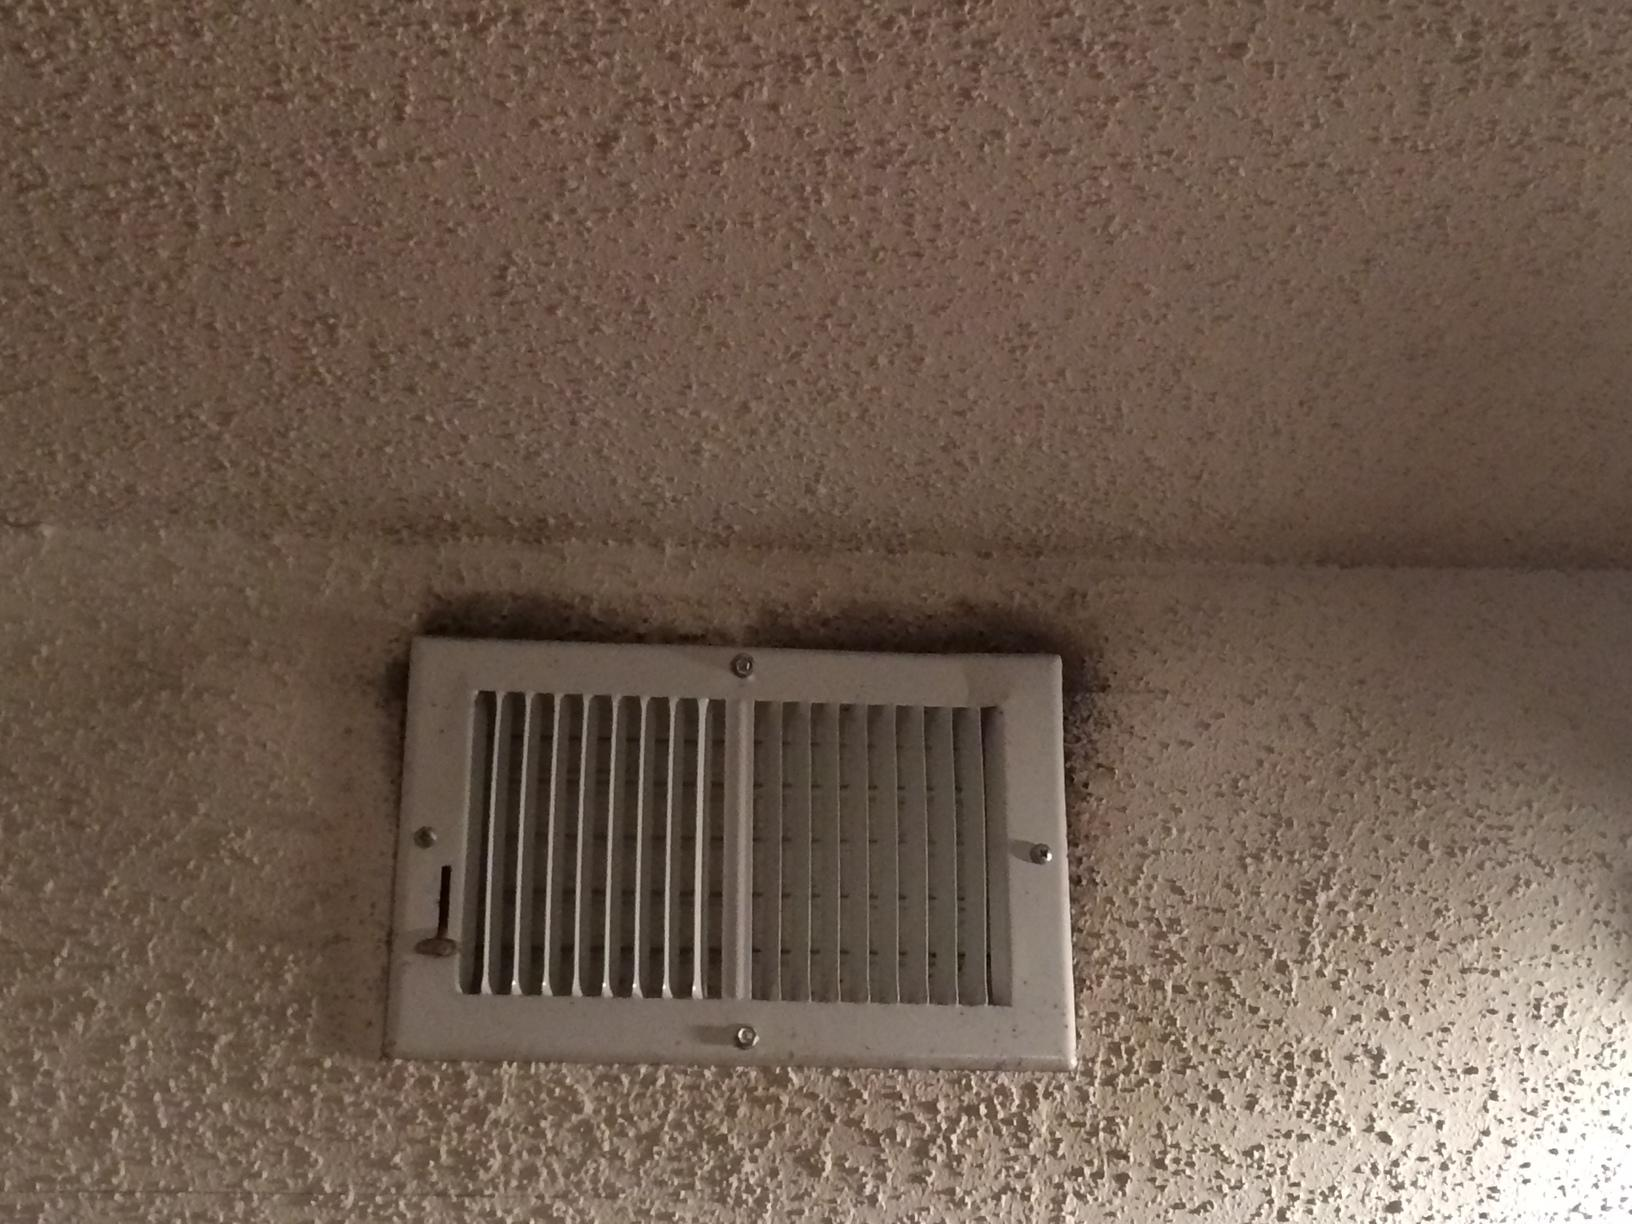 Mold in the air duct